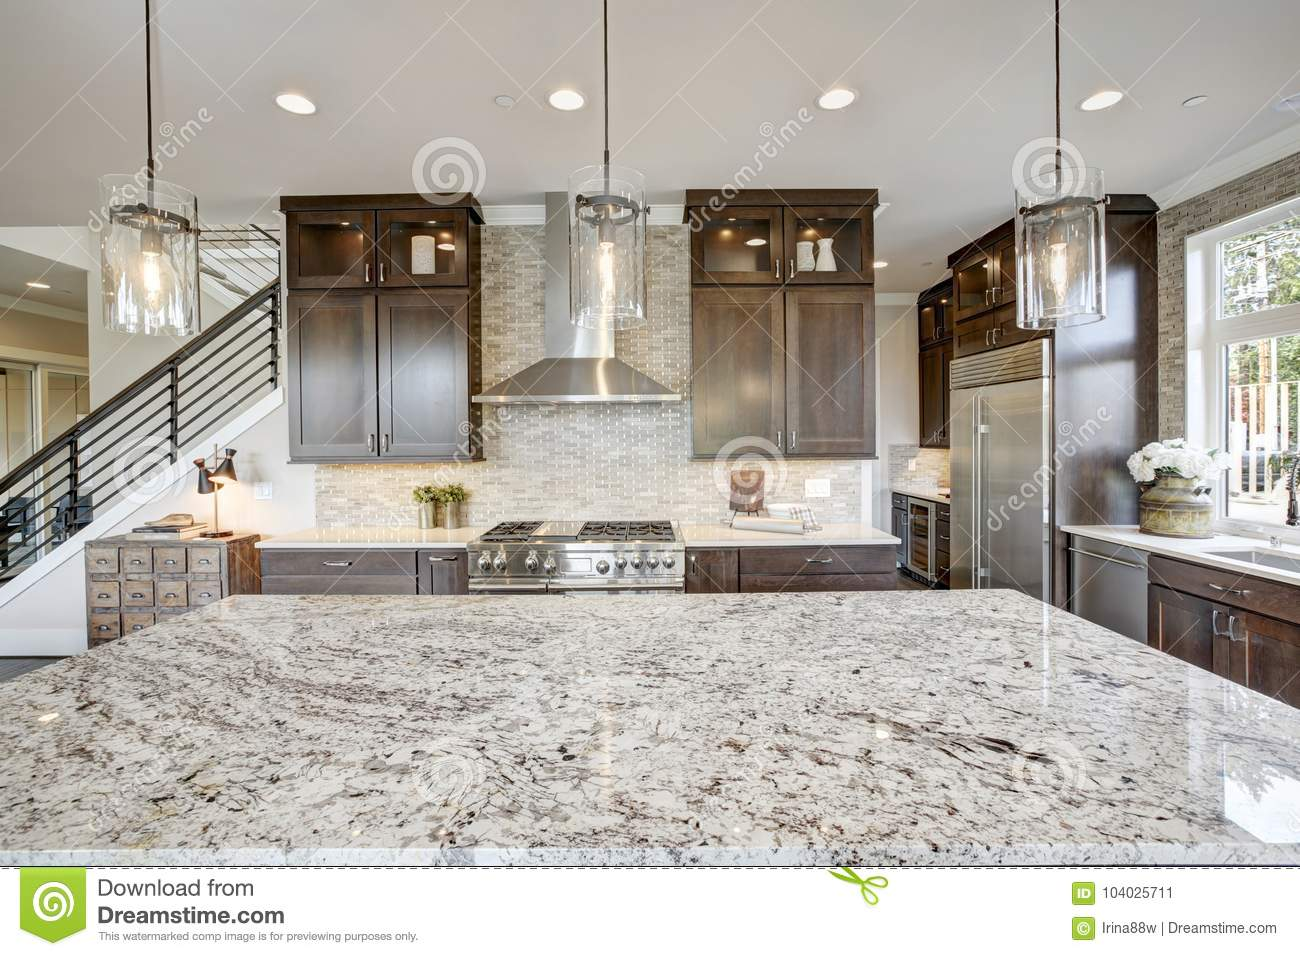 Large Modern Kitchen Island Luxury Kitchen In A New Construction Home Stock Image Image Of